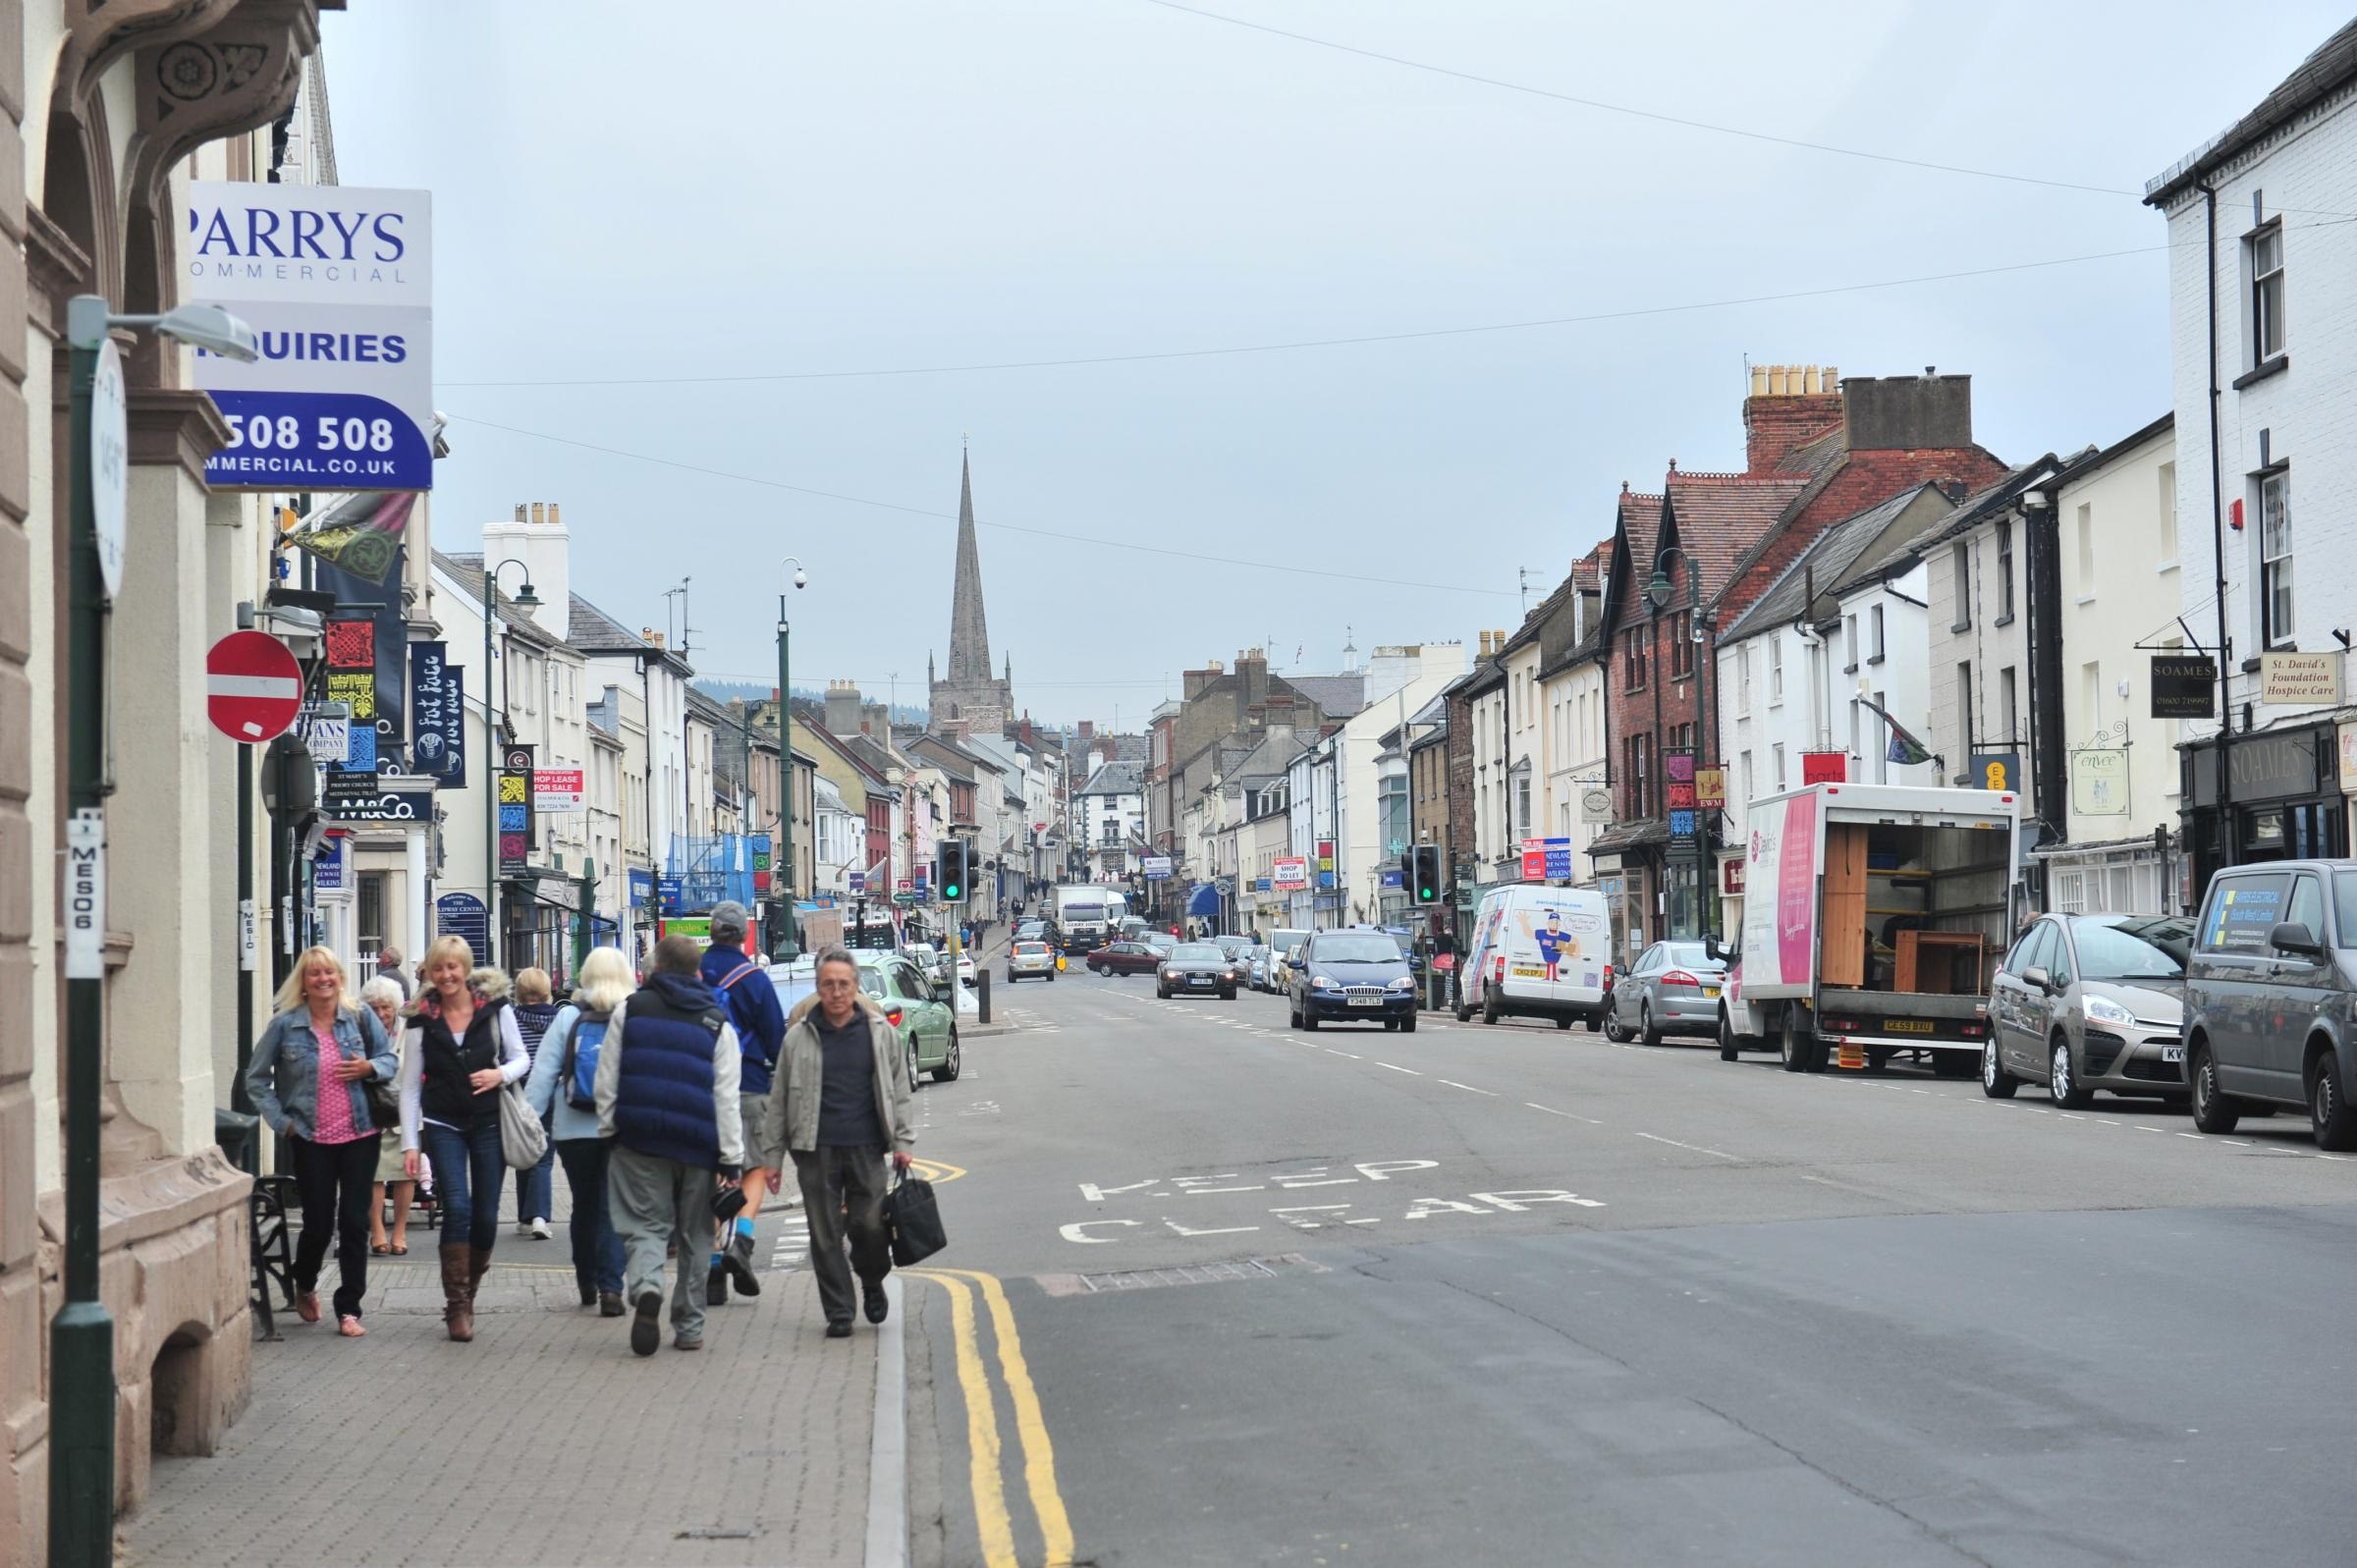 Monmouth named one of the UK's best places to live